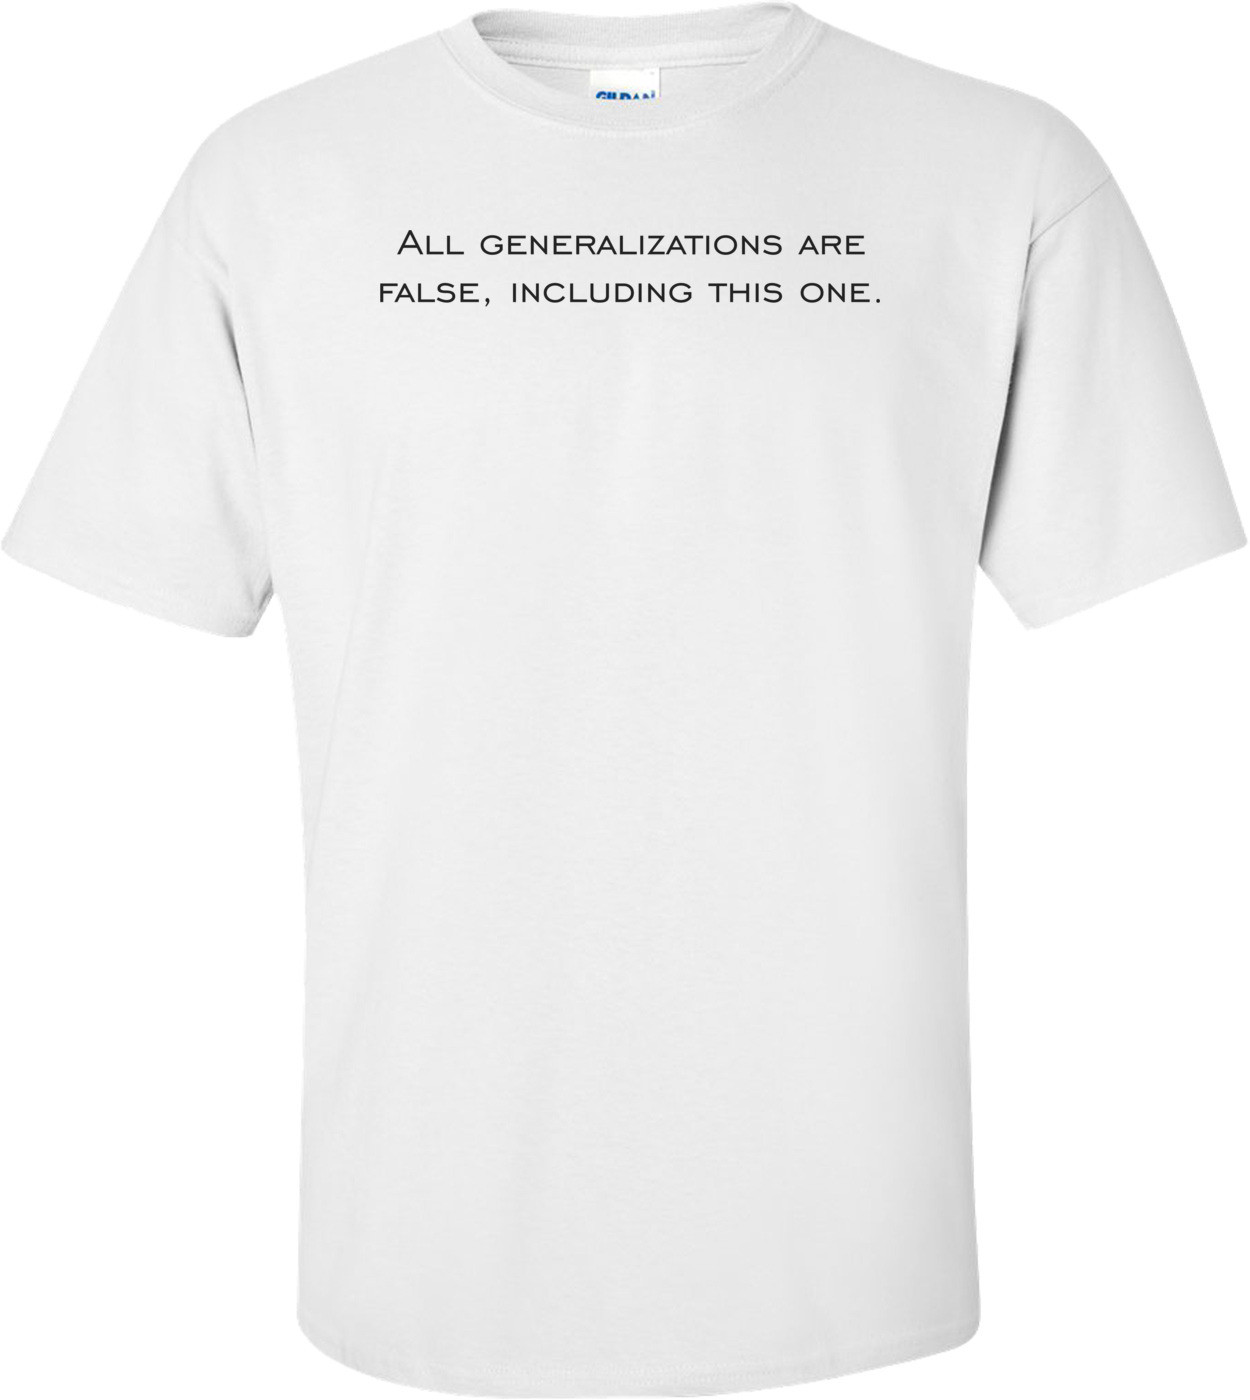 All generalizations are false, including this one. Shirt